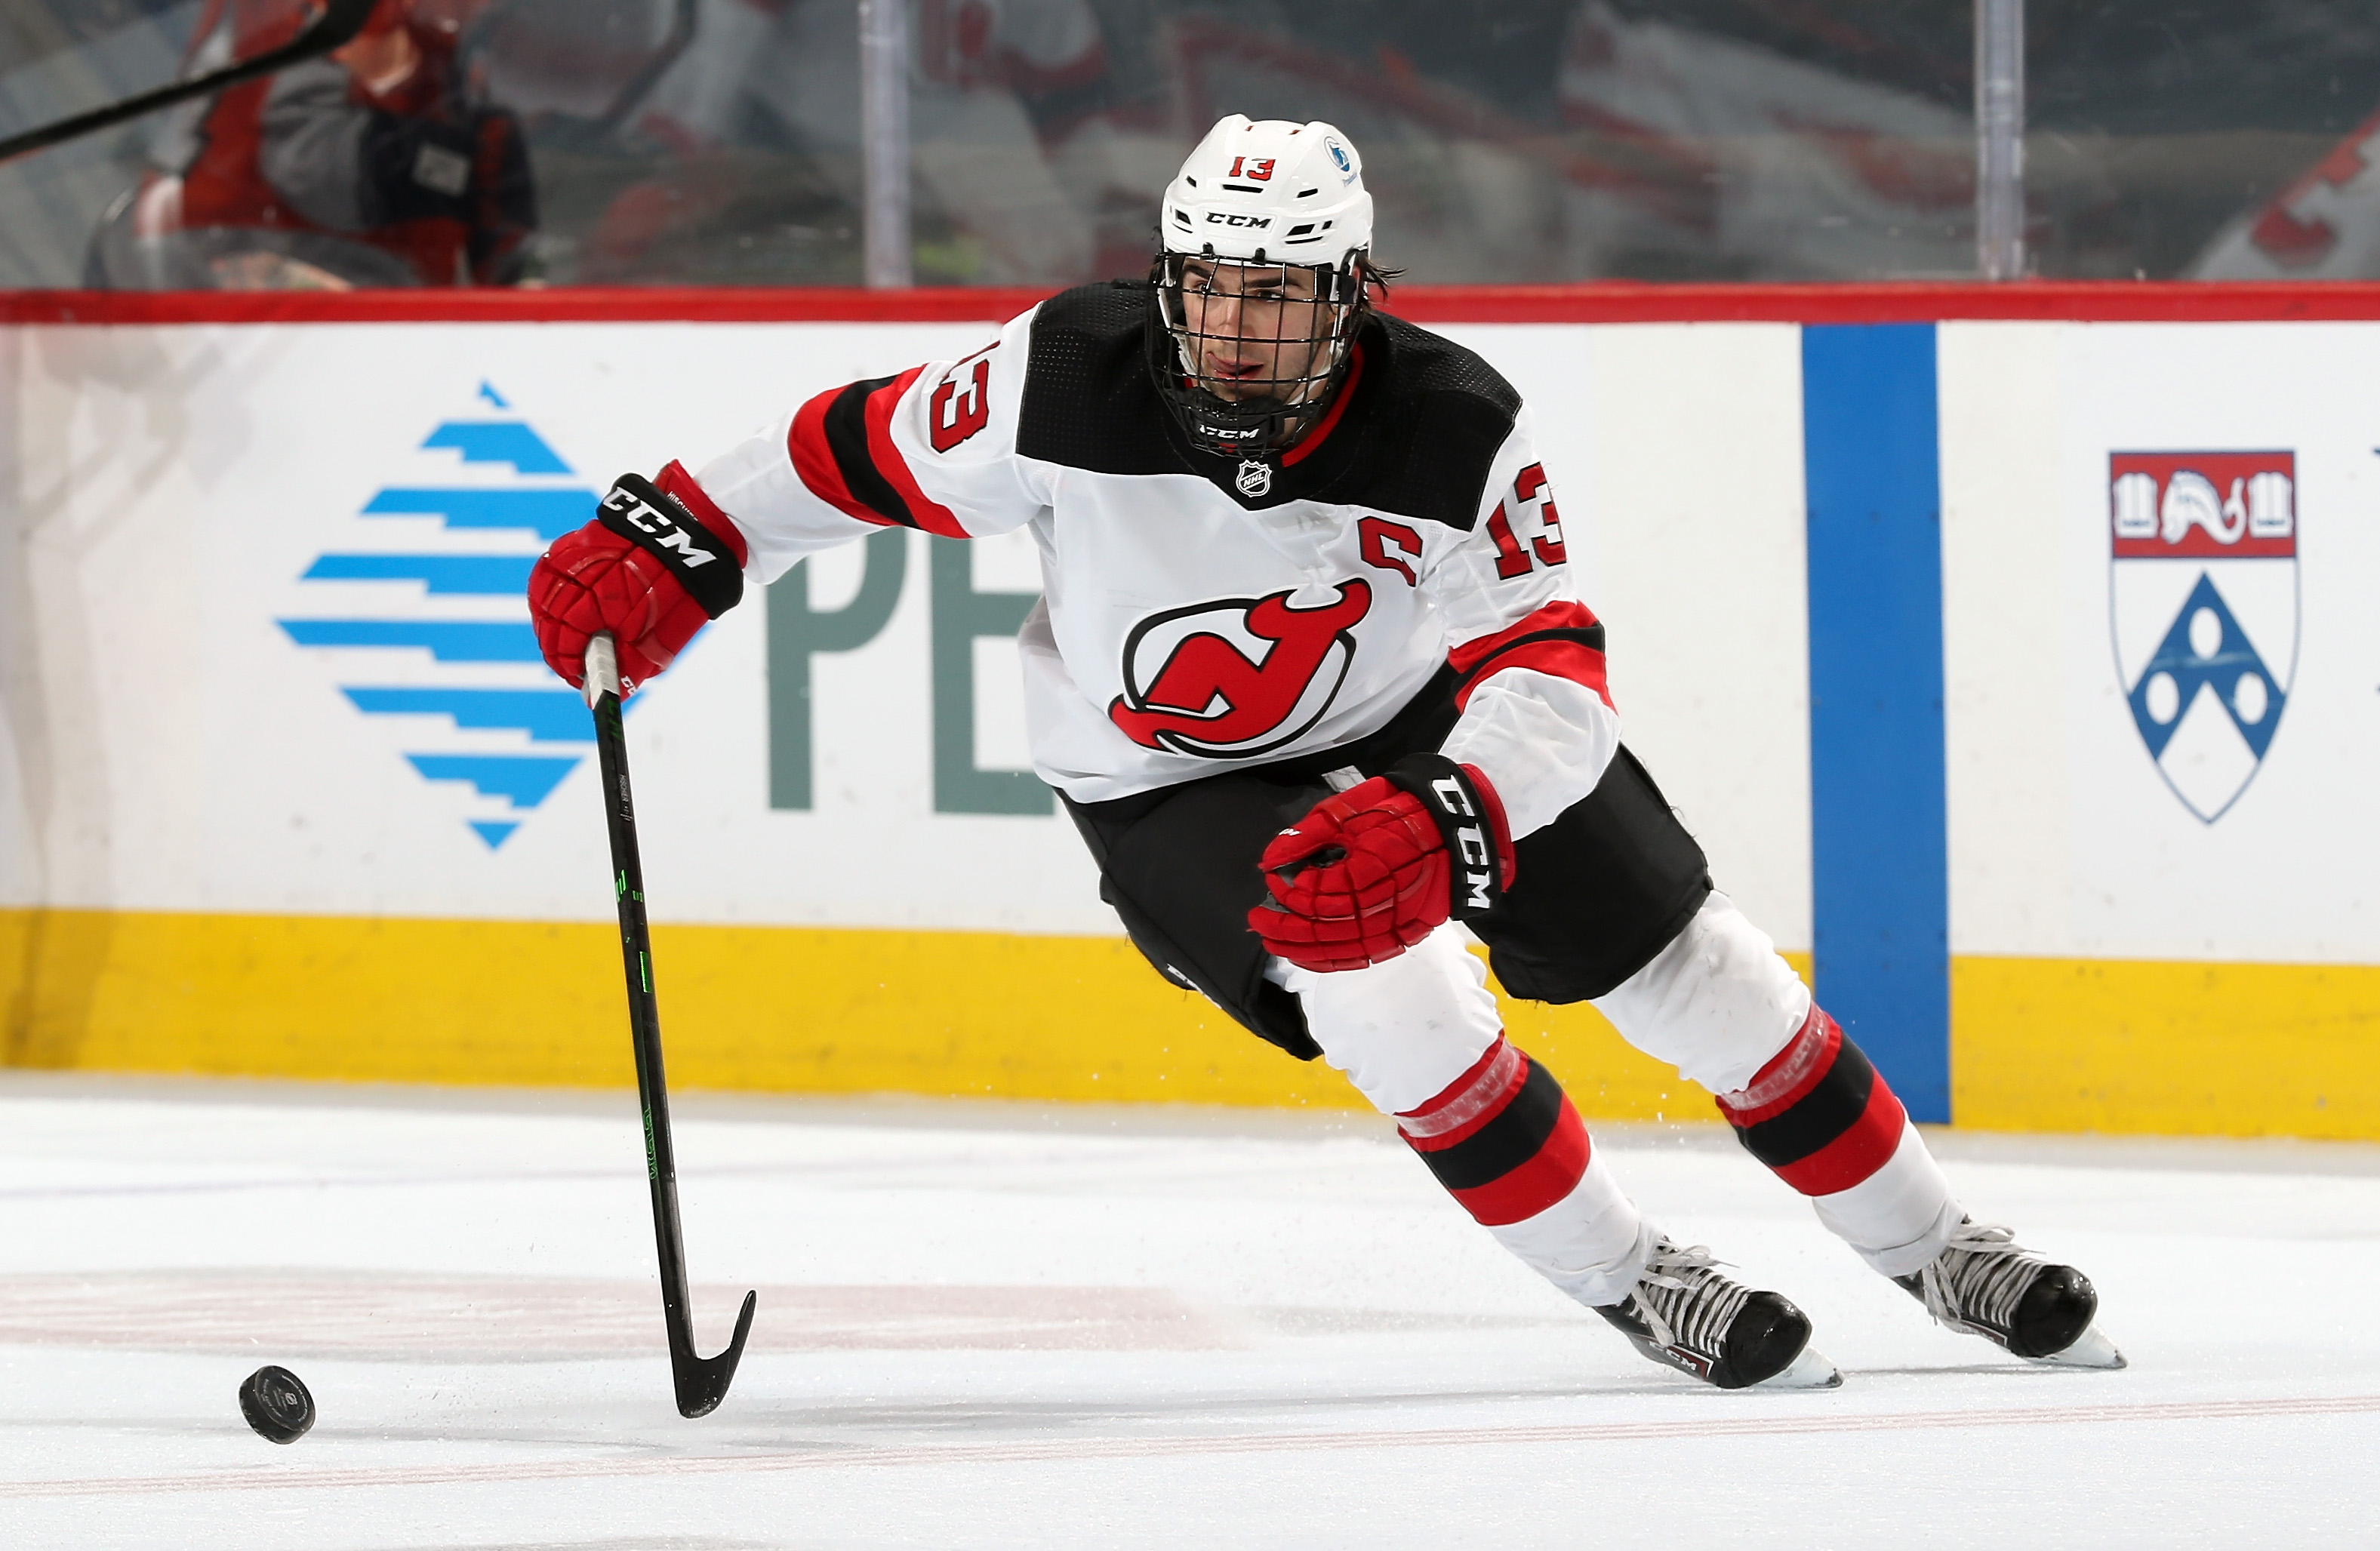 Nico Hischier #13 of the New Jersey Devils skates the puck against the Philadelphia Flyers at the Wells Fargo Center on May 10, 2021 in Philadelphia, Pennsylvania.